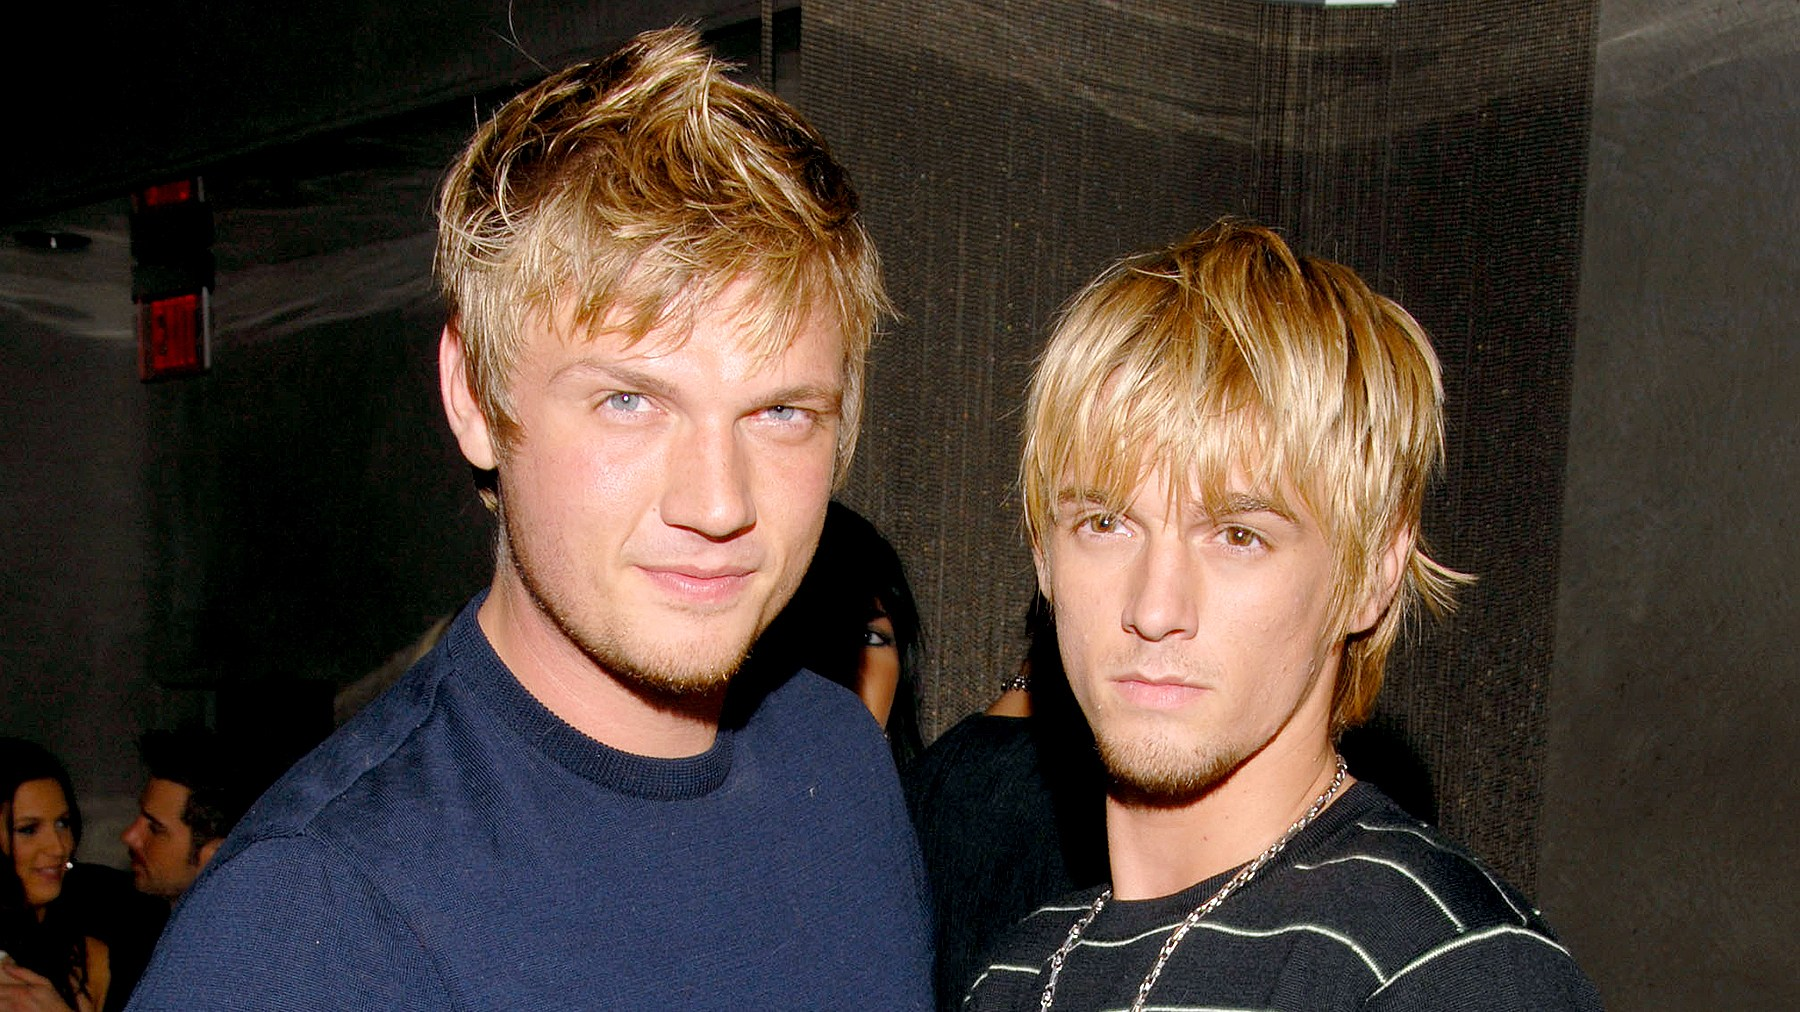 Nick Carter and Aaron Carter during Howie Dorough's Birthday Party at LAX in Hollywood, California, in 2006.